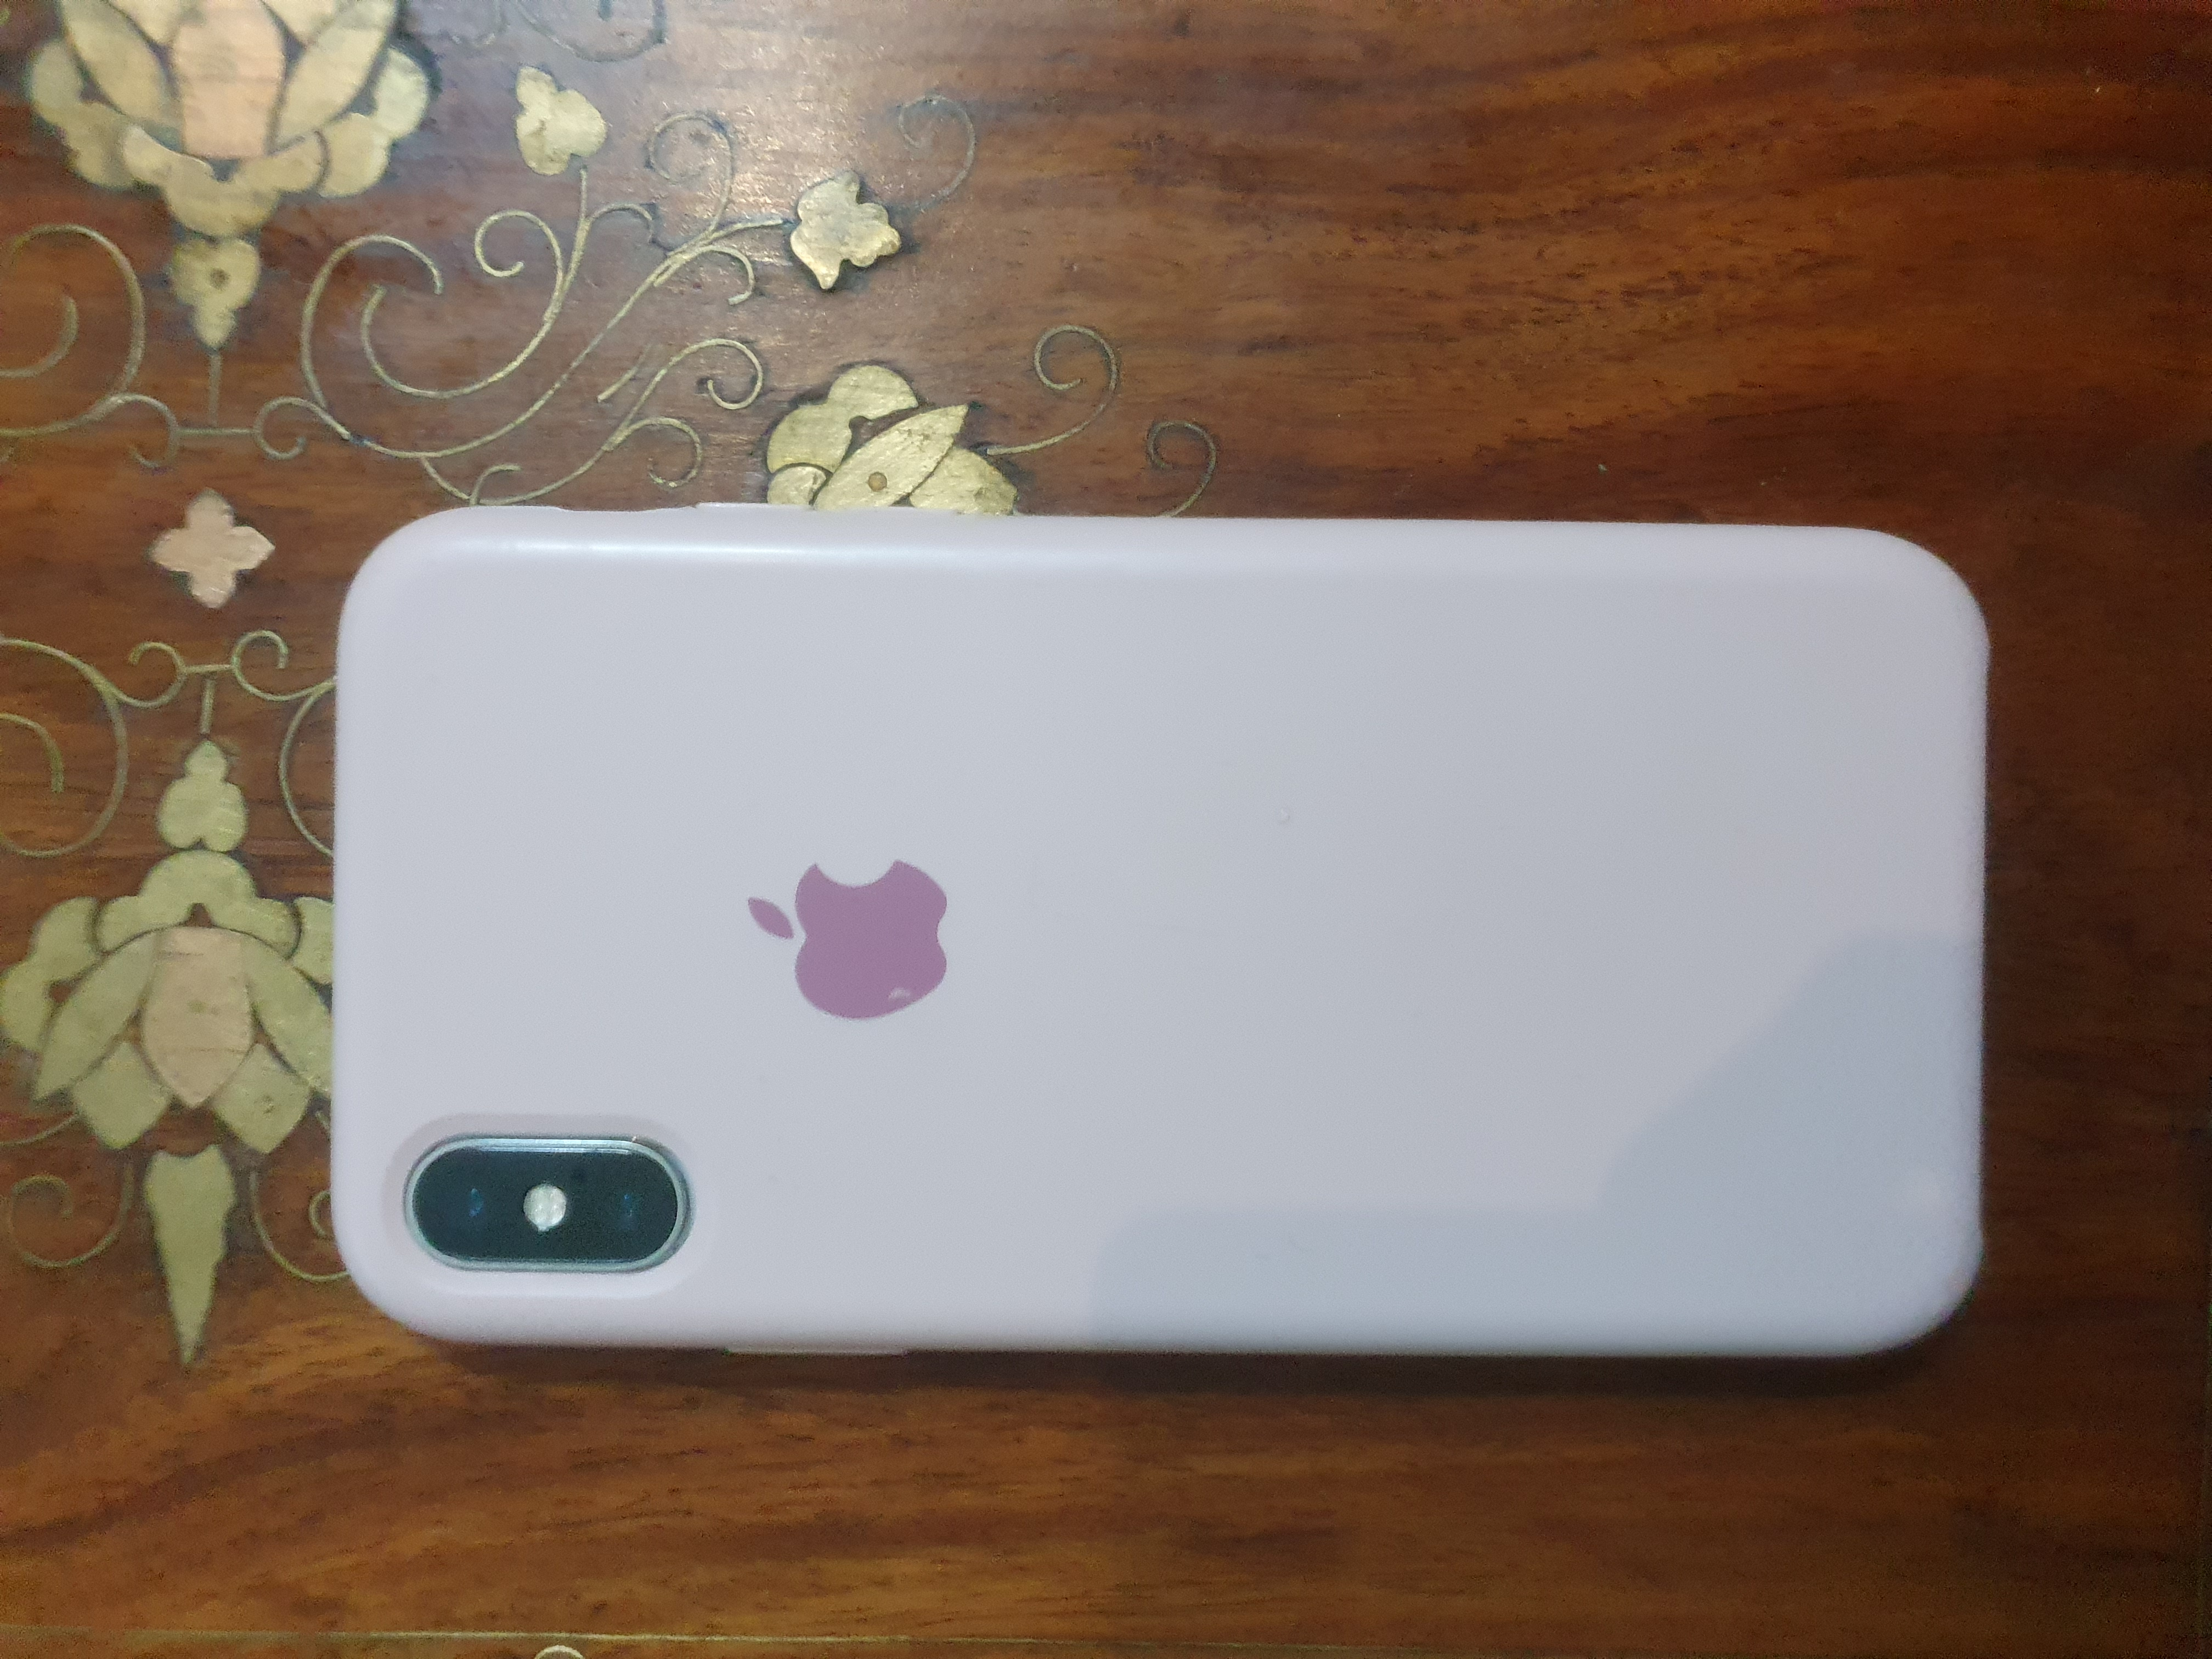 Iphone x for sale - photo 3